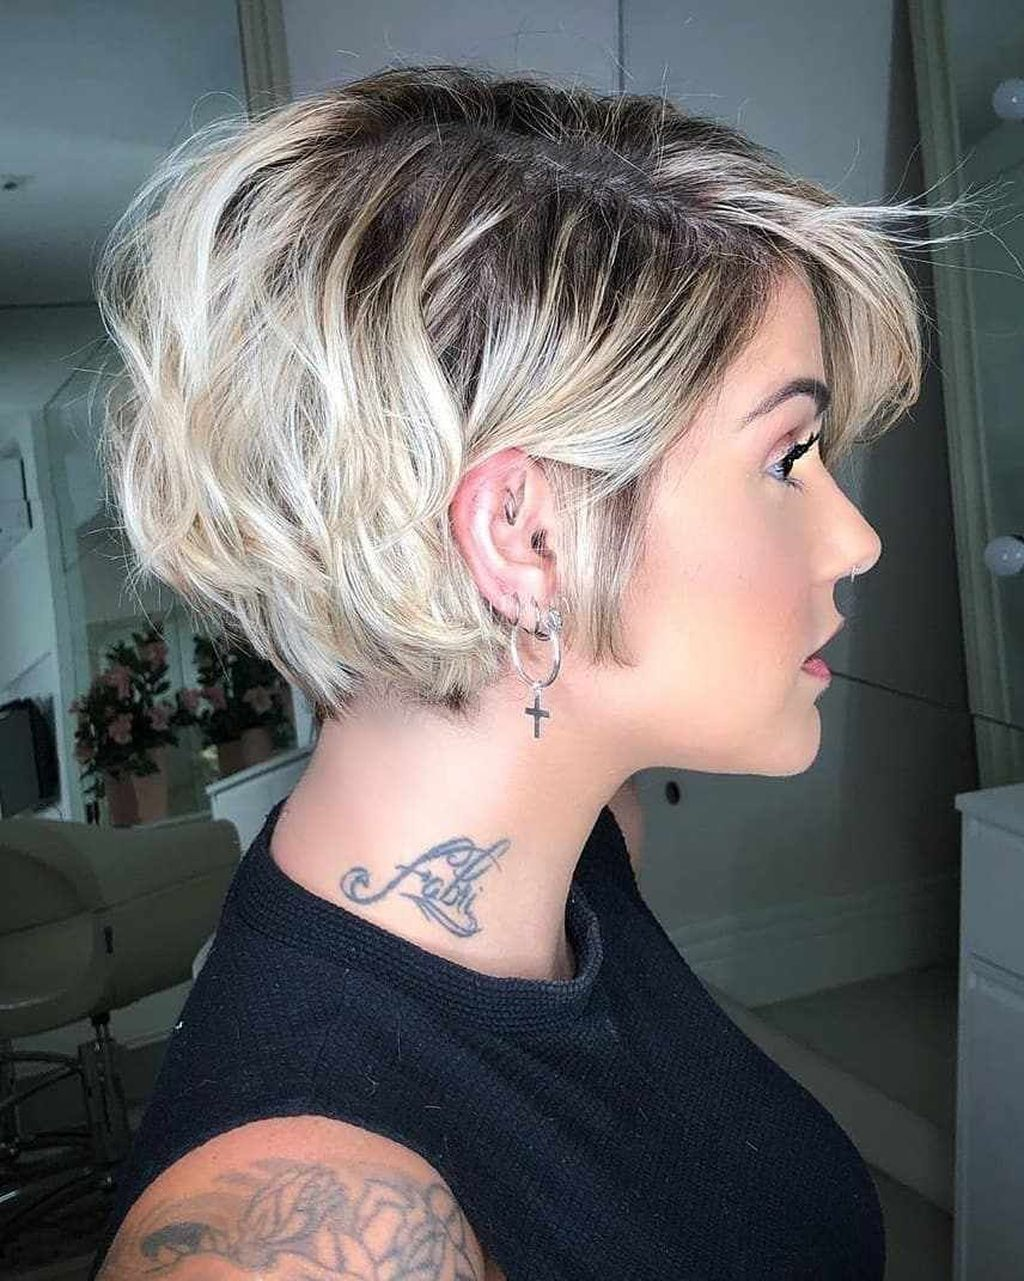 20 Incredible Short Haircuts And Hairstyles Ideas That You Need To Try Thick Hair Styles Stylish Short Haircuts Short Hairstyles For Thick Hair